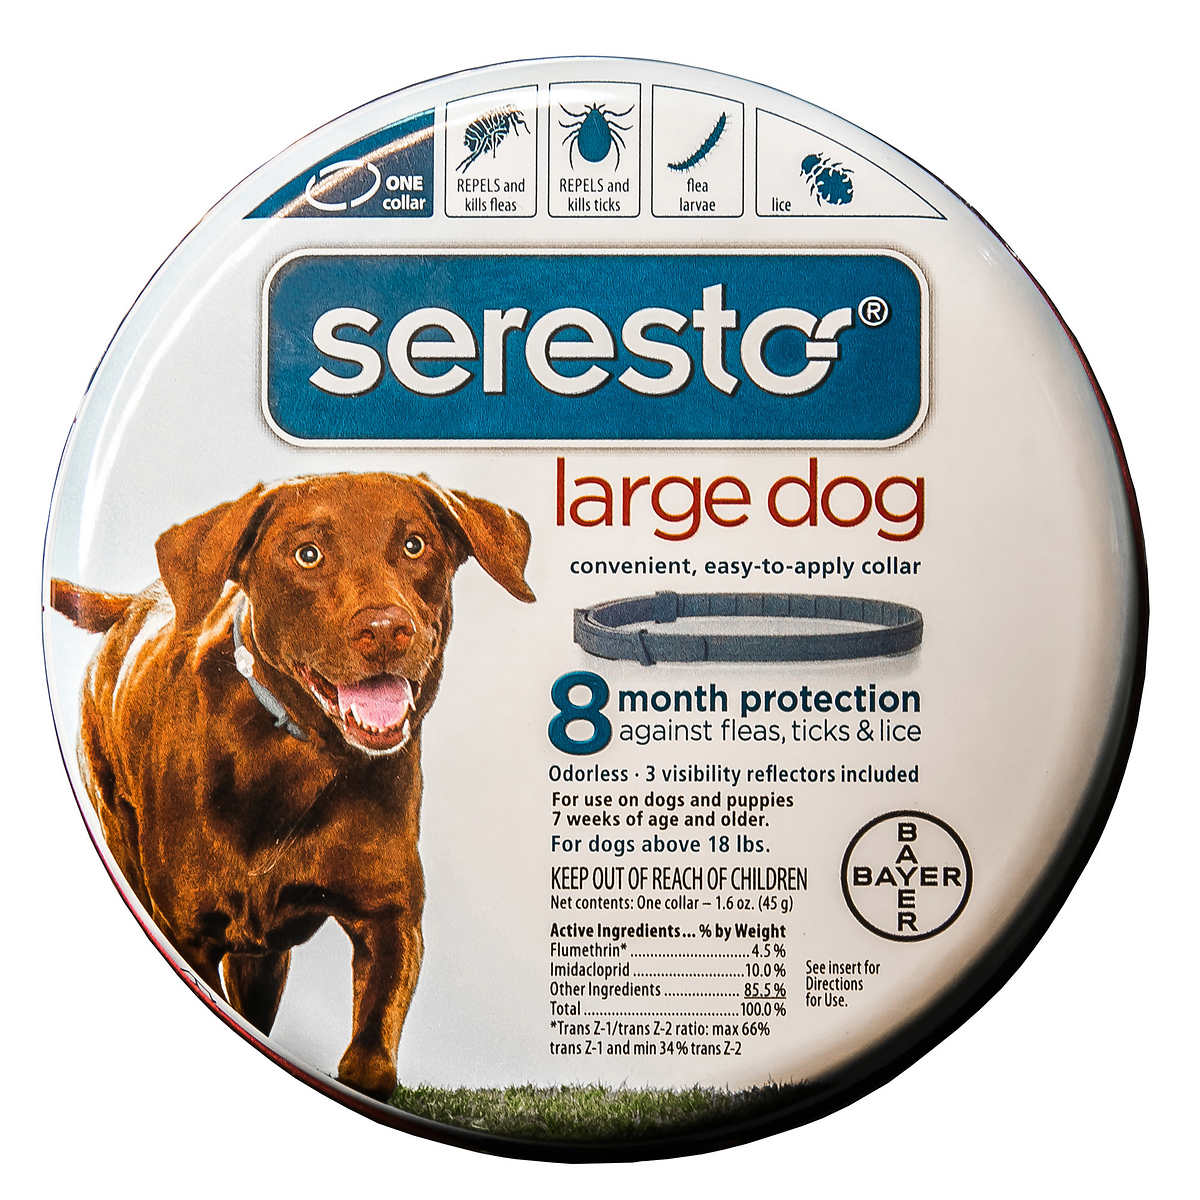 Can Dog With Seresto Collar Sleep In Bed? (Read This First)